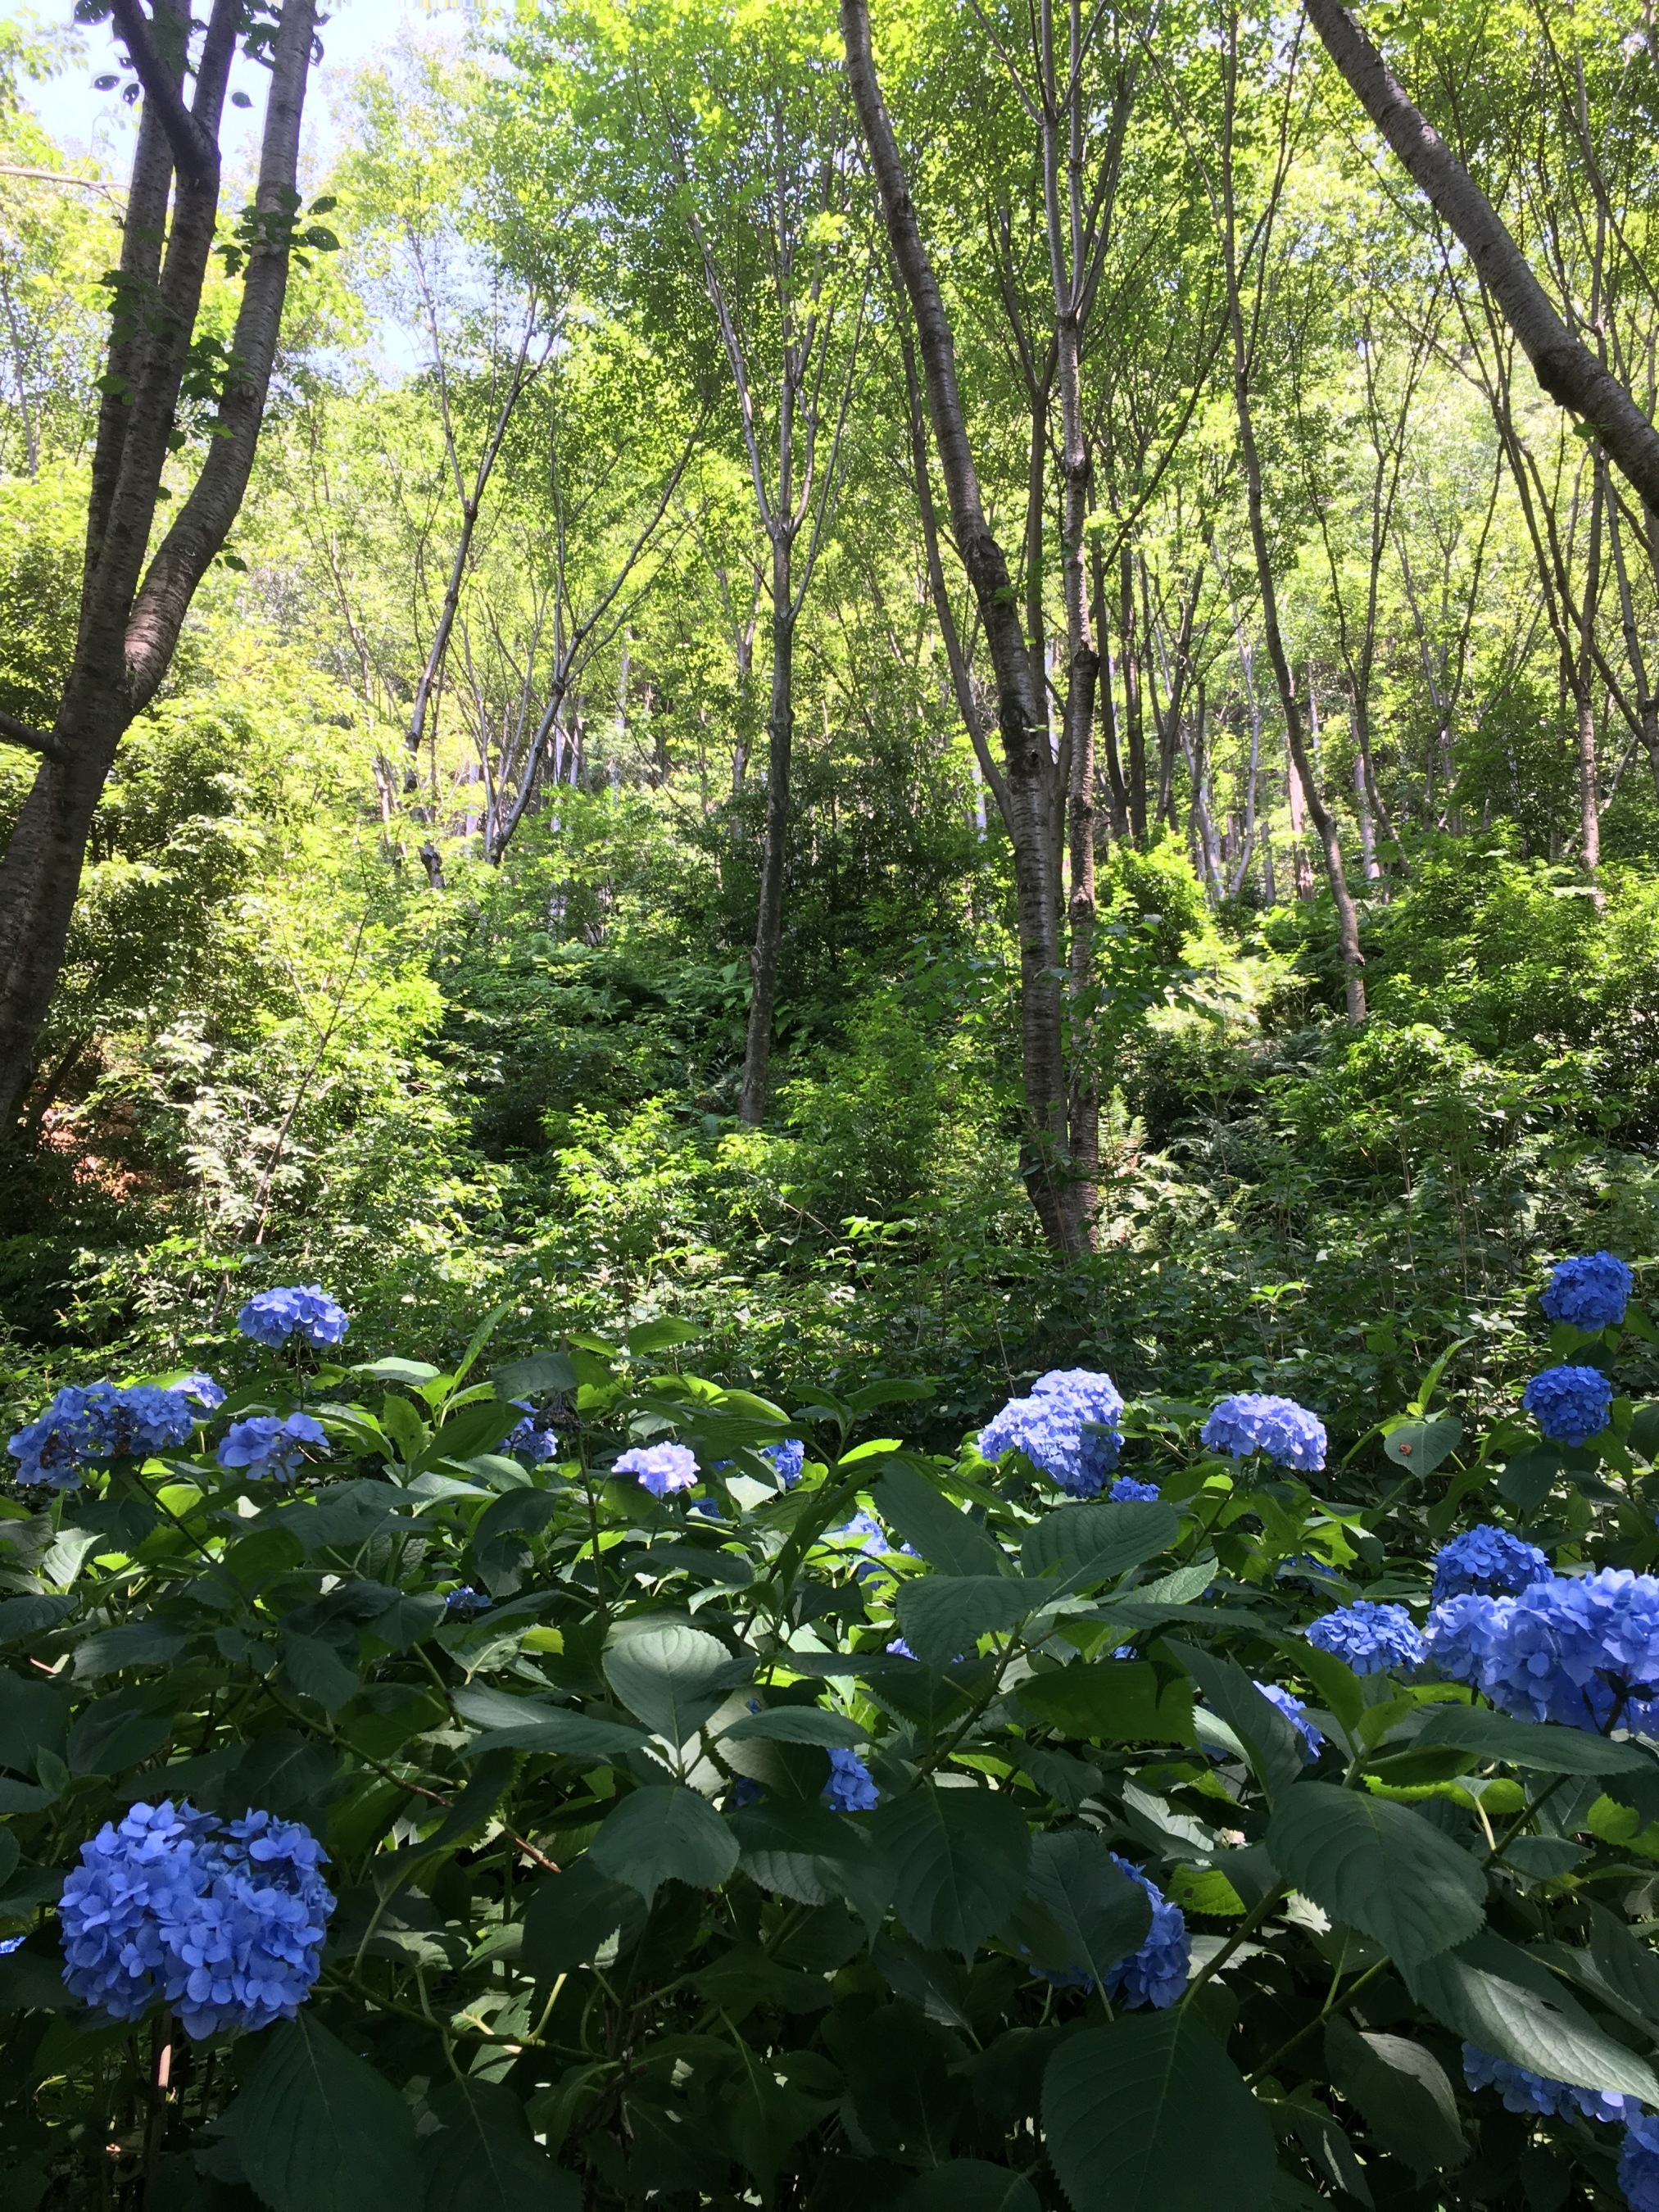 """Another image of the vibrant hydrangeas currently in flower. This image is from the mega-famous Kiyomizu-dera Temple, appropriately called the """"Pure Water Temple""""."""